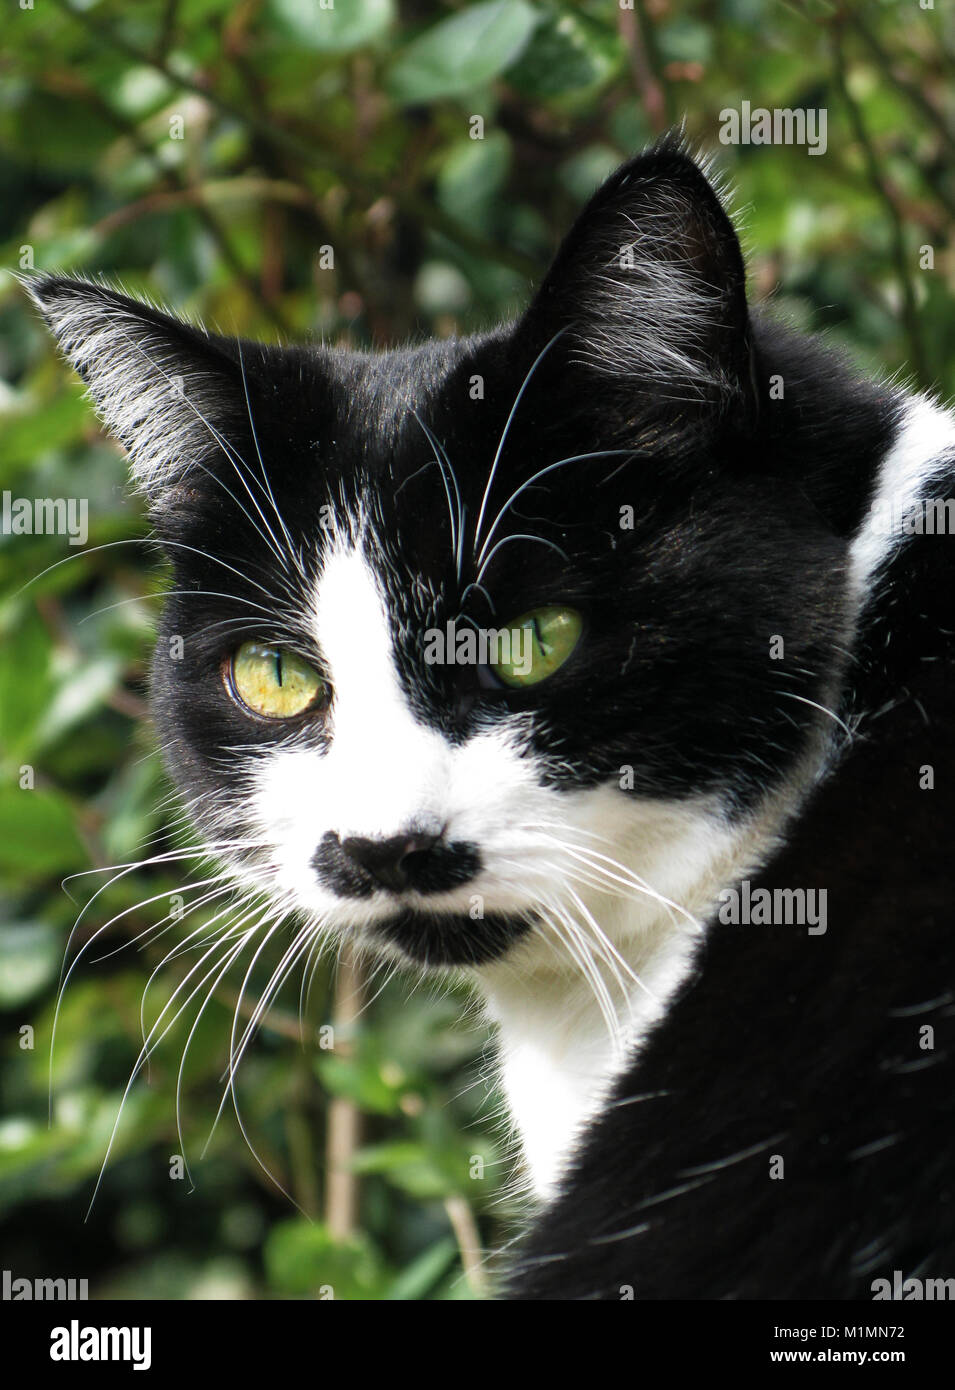 Family black and white cat - Stock Image